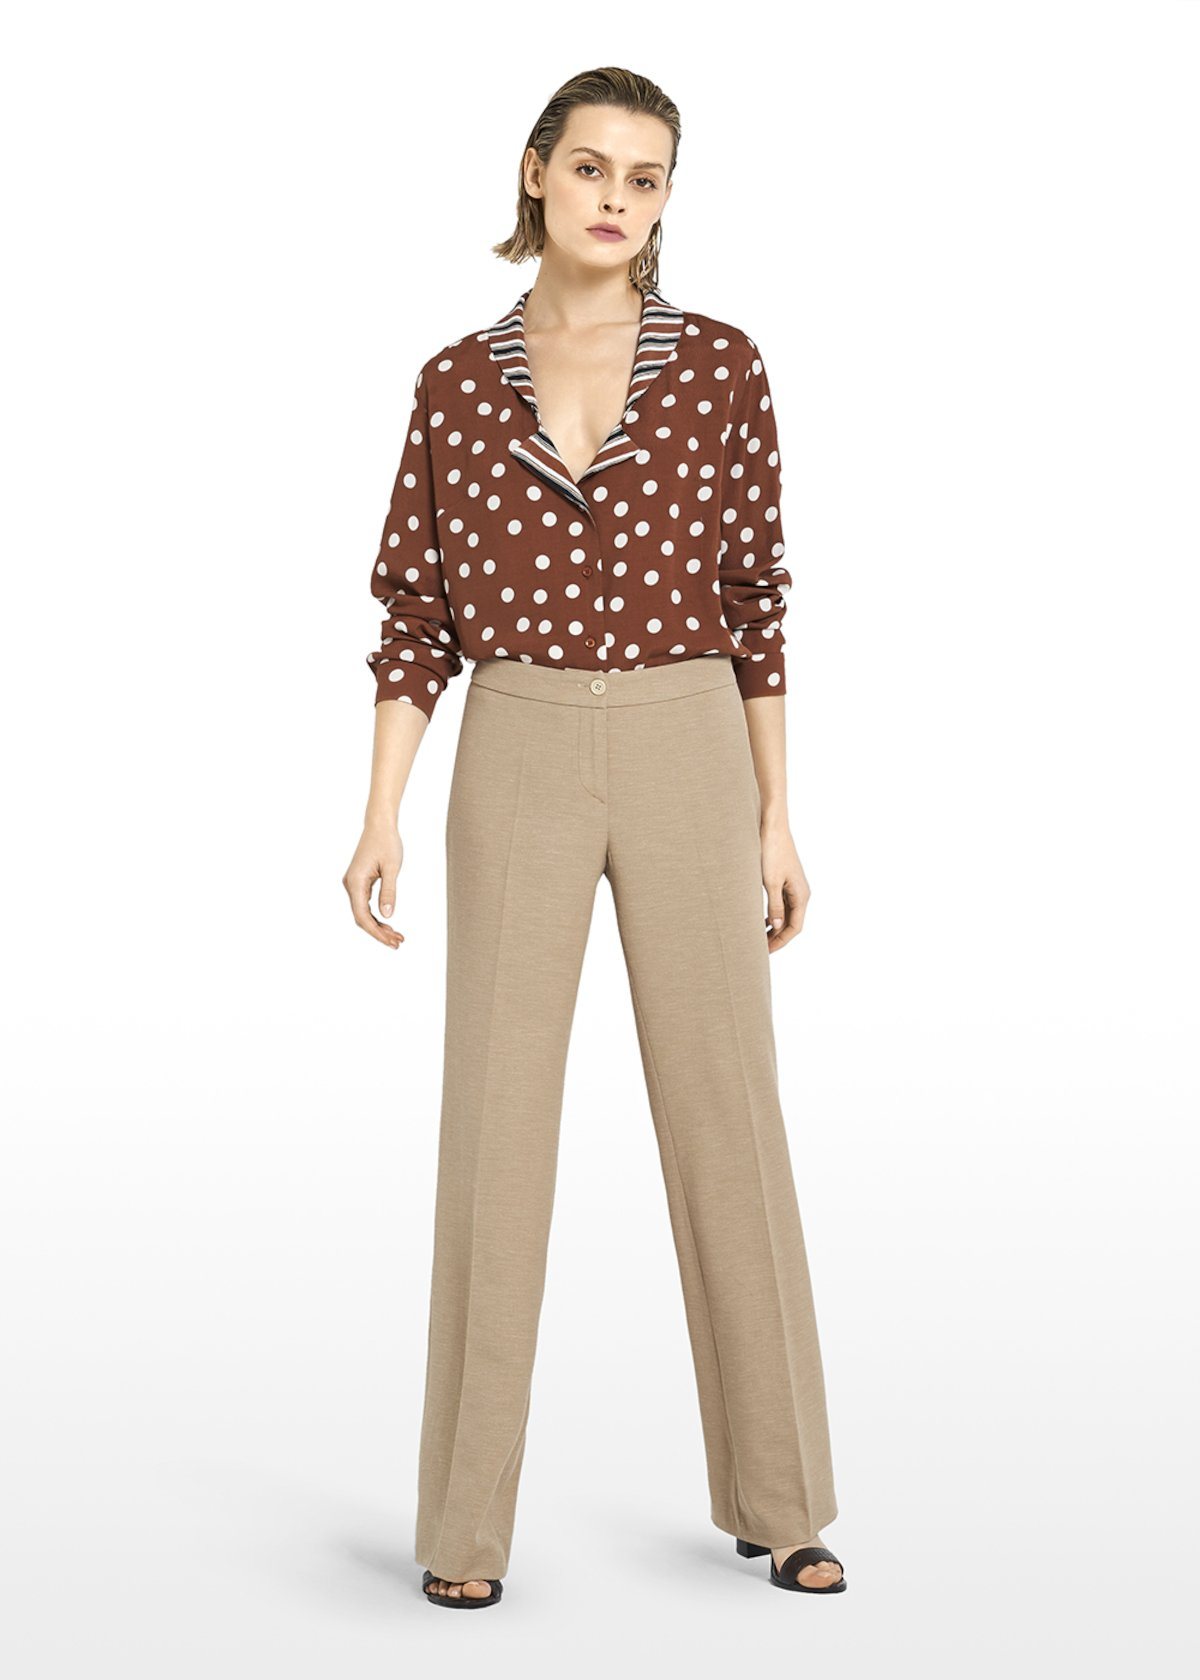 Pyper pants in linen blend fabric with wide leg - Nomad - Woman